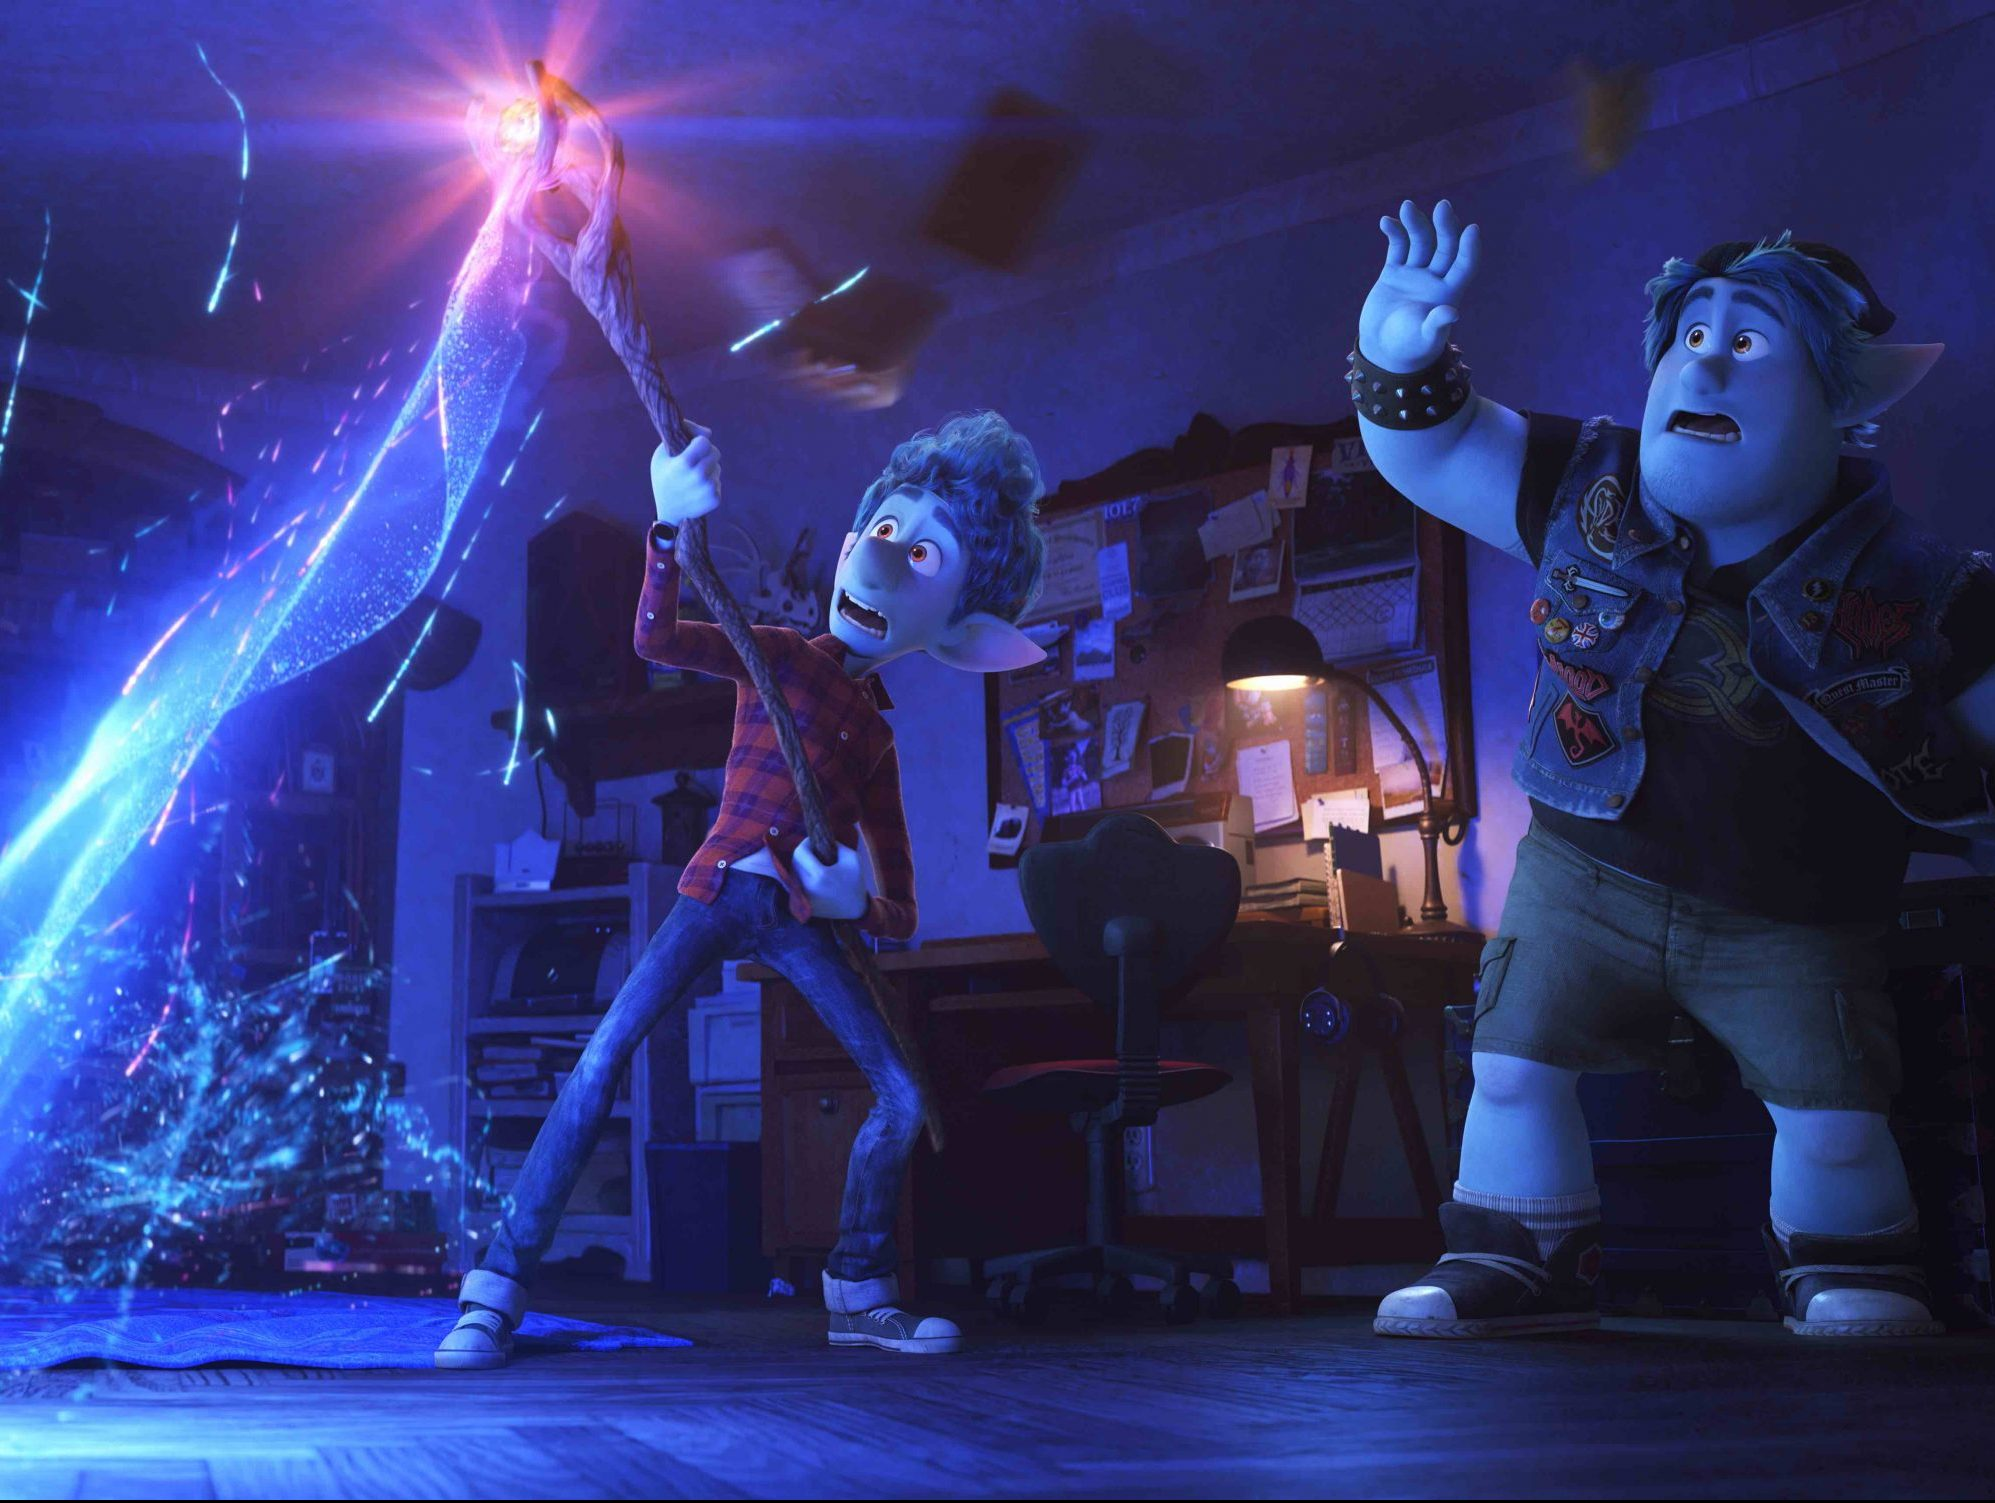 A pair of elves turn their dead dad into pants in the trailer for Pixar's Onward